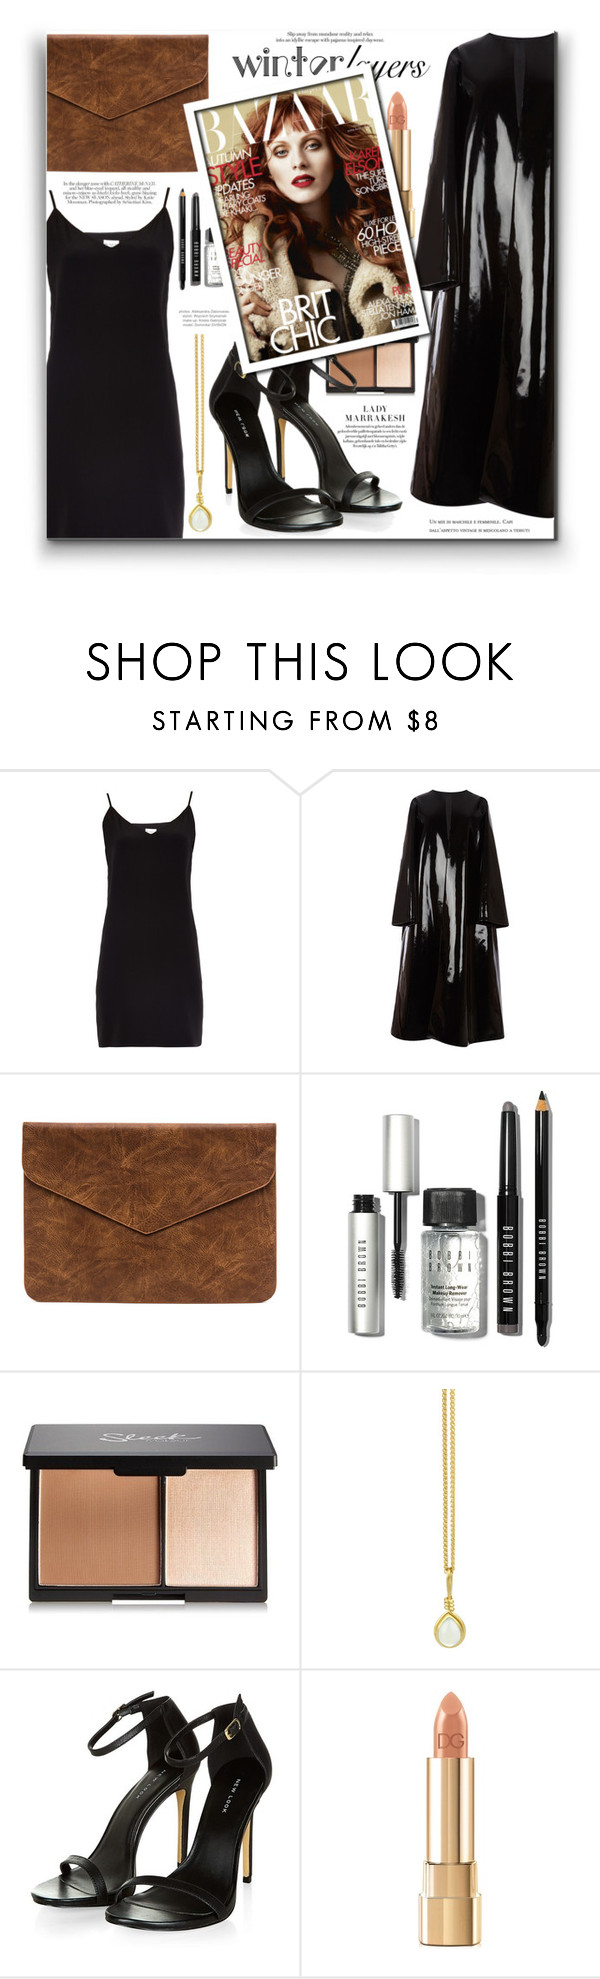 """Winter Layers: Slip Dress"" by fernandamaverick ❤ liked on Polyvore featuring Raey, Emilia Wickstead, Bobbi Brown Cosmetics, Prism Design, Dolce&Gabbana, women's clothing, women's fashion, women, female and woman"